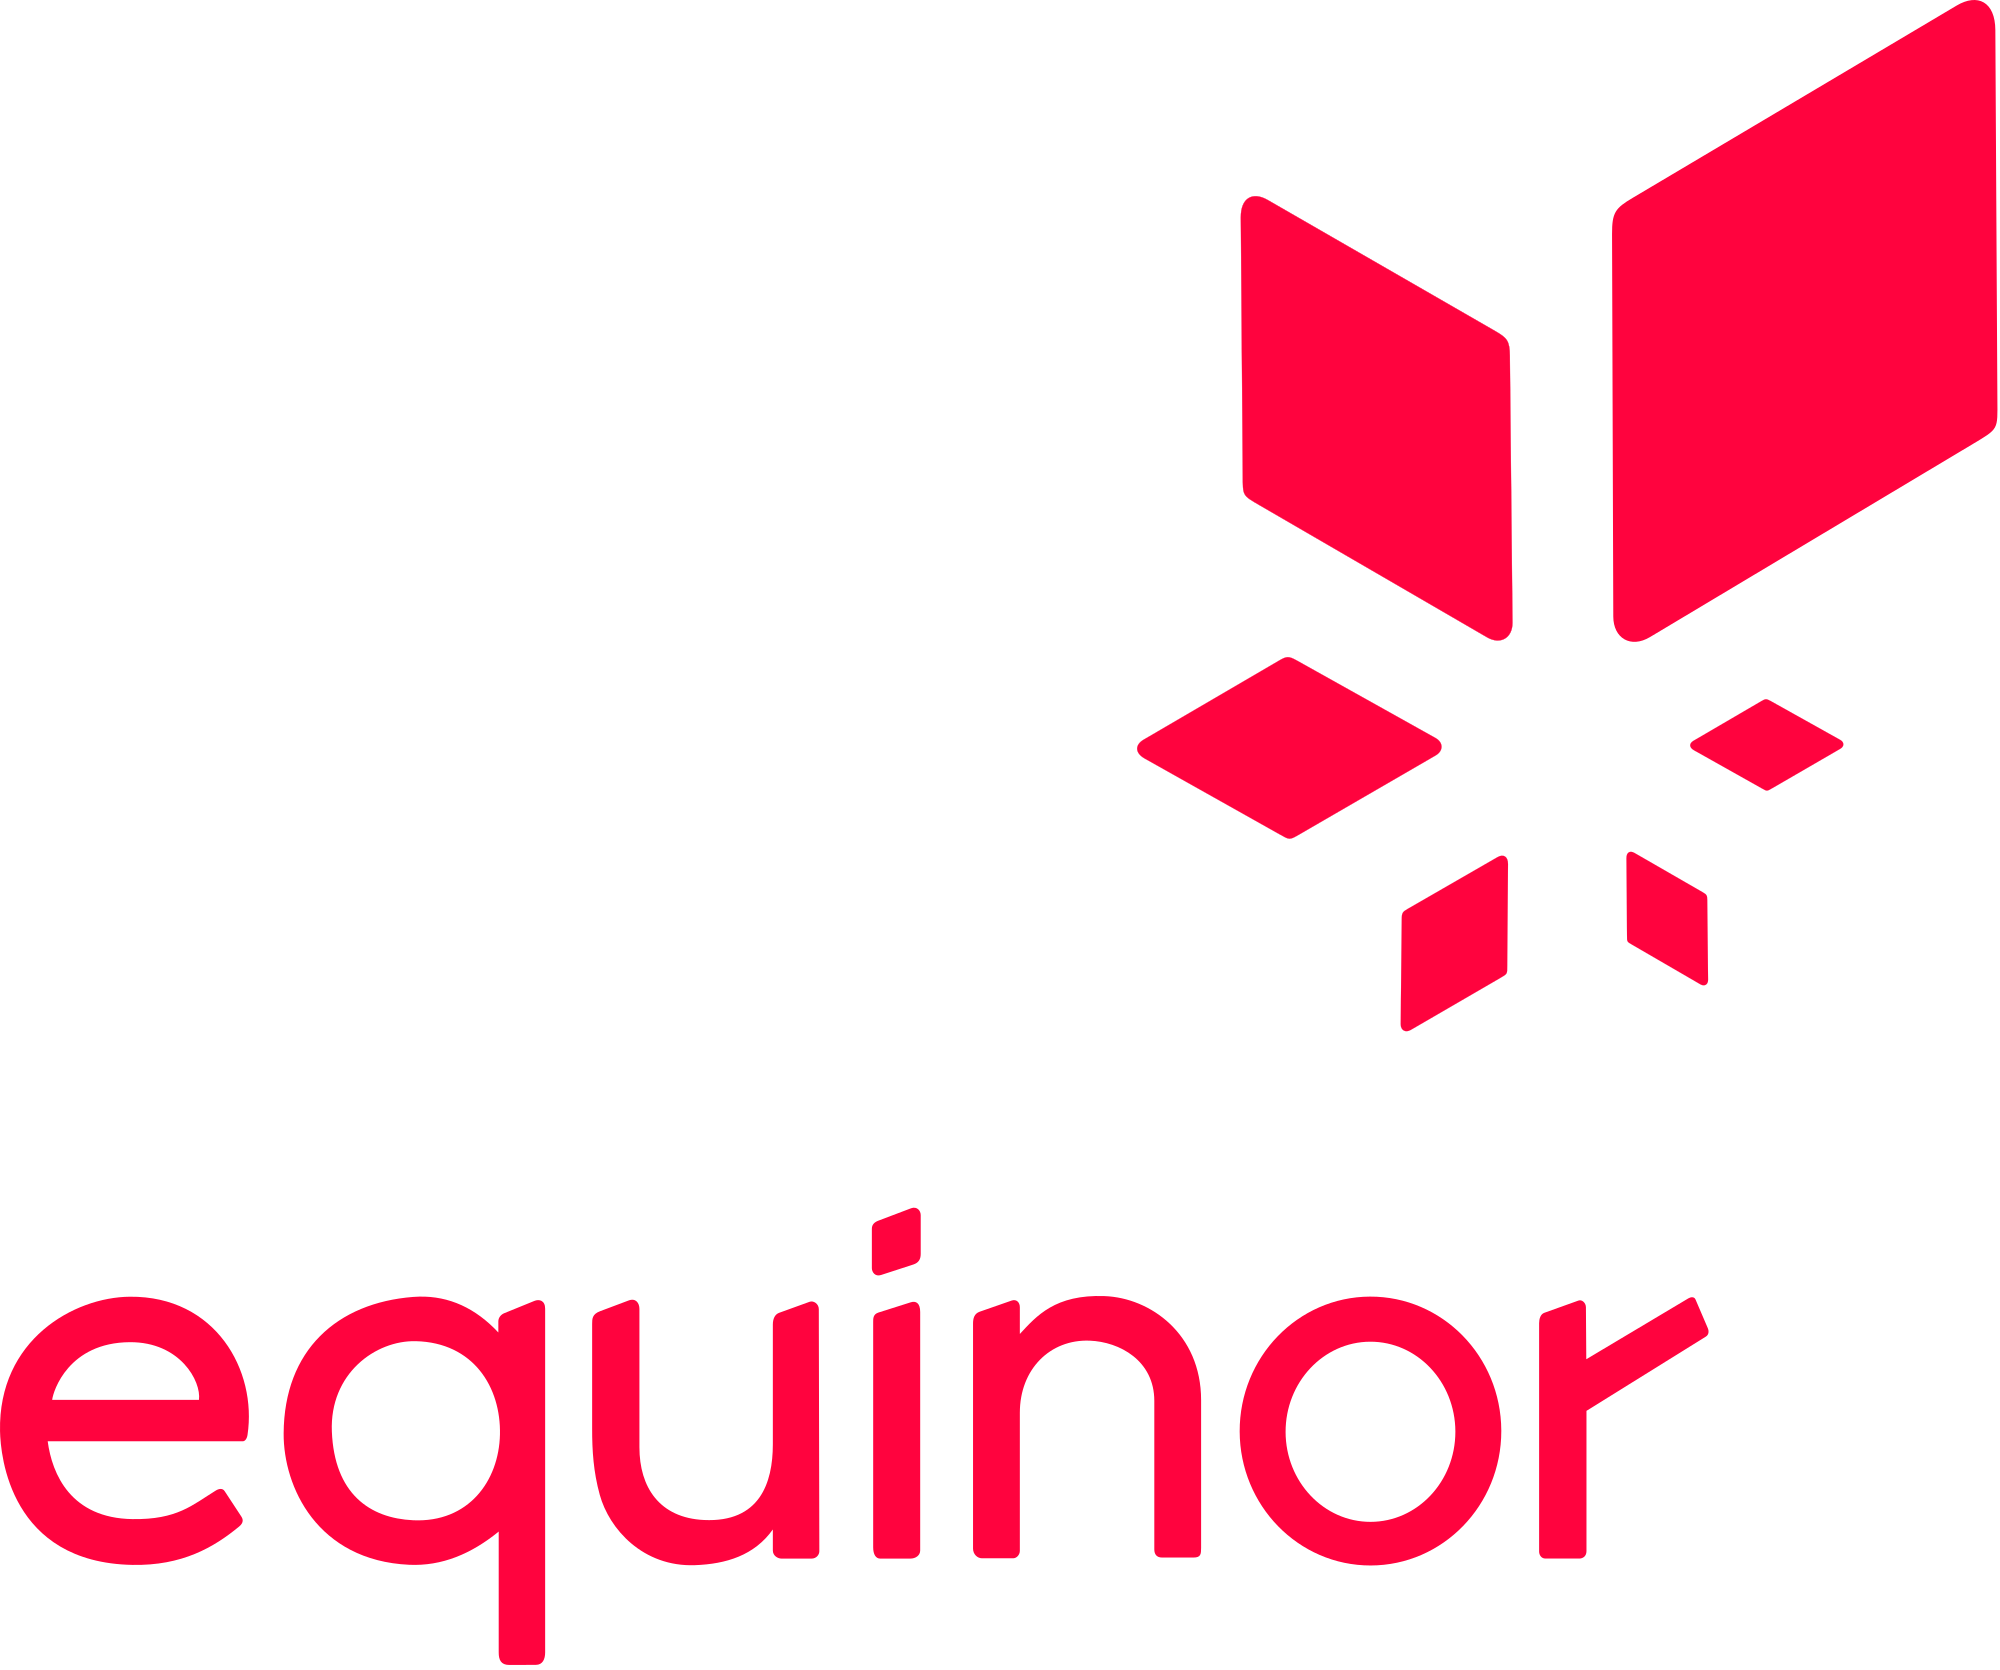 Equinor Appoints New CEO With Oil Giant Shifting Focus